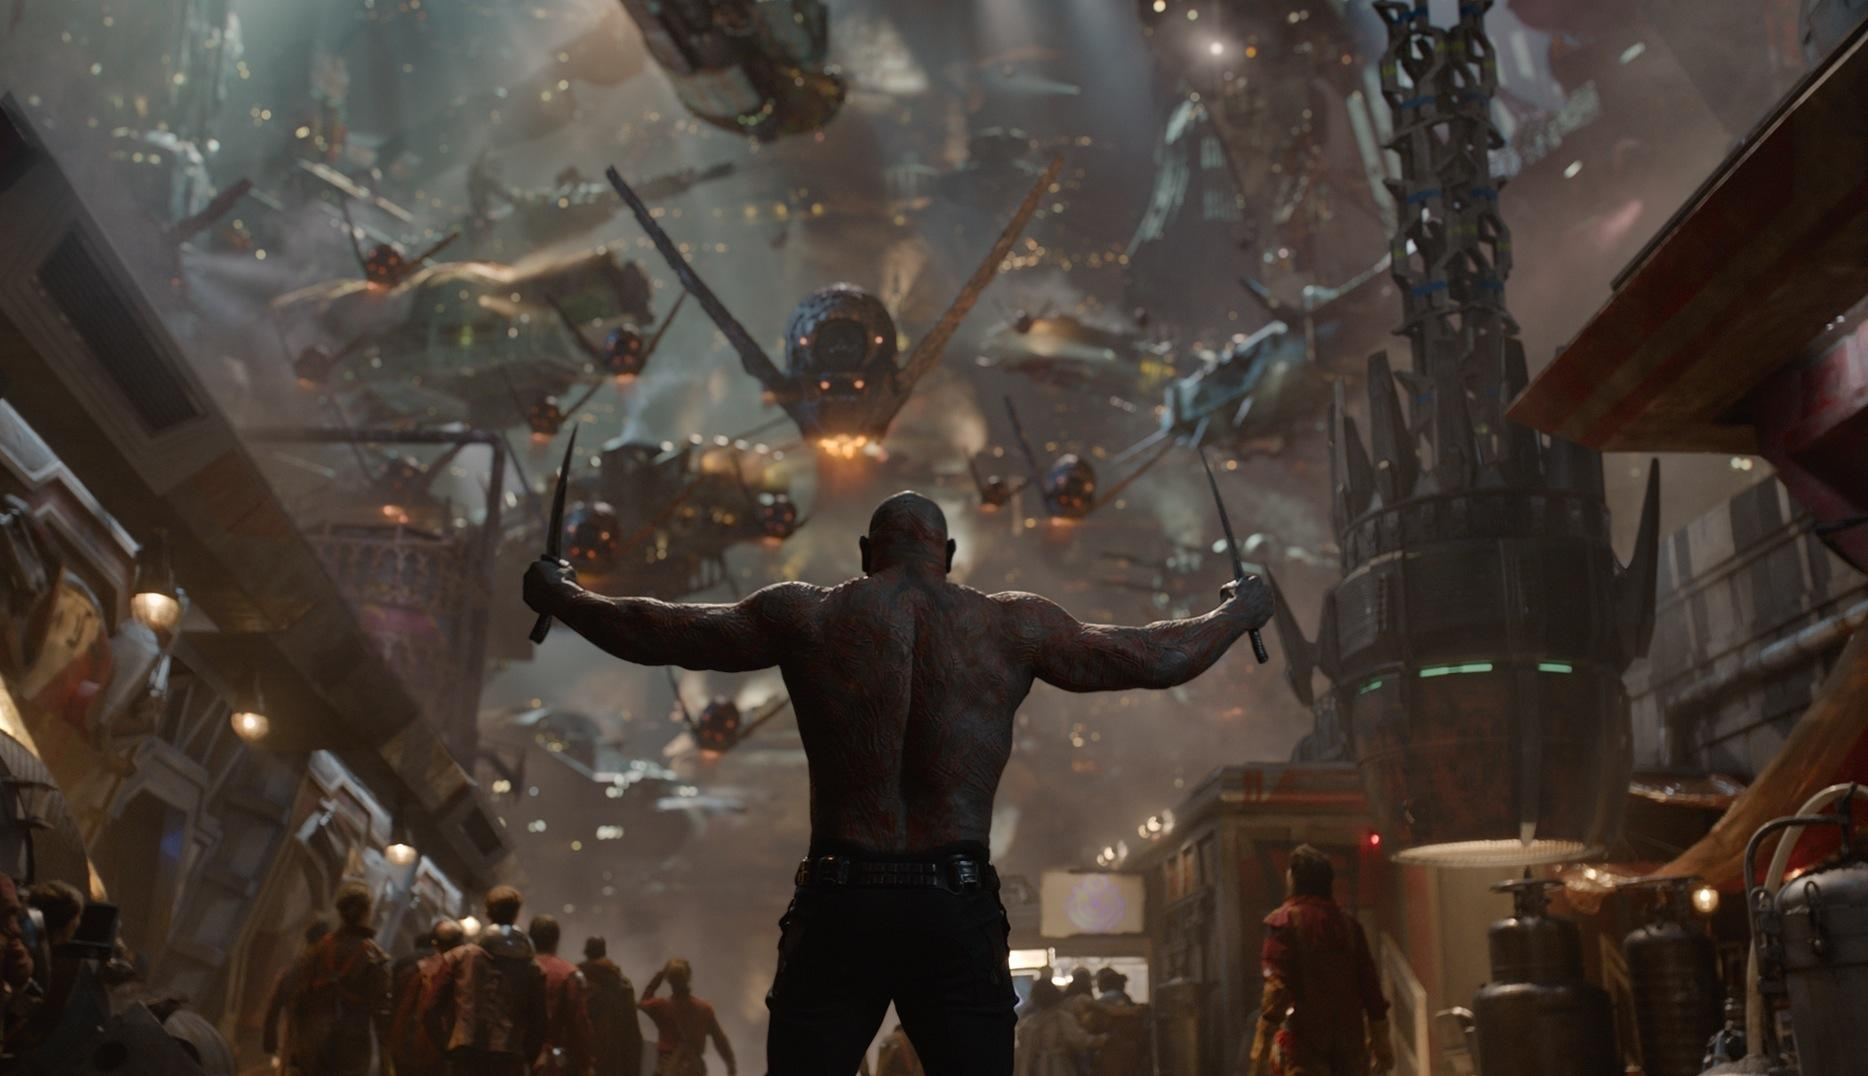 Drax (played by Dave Bautista) is one of the